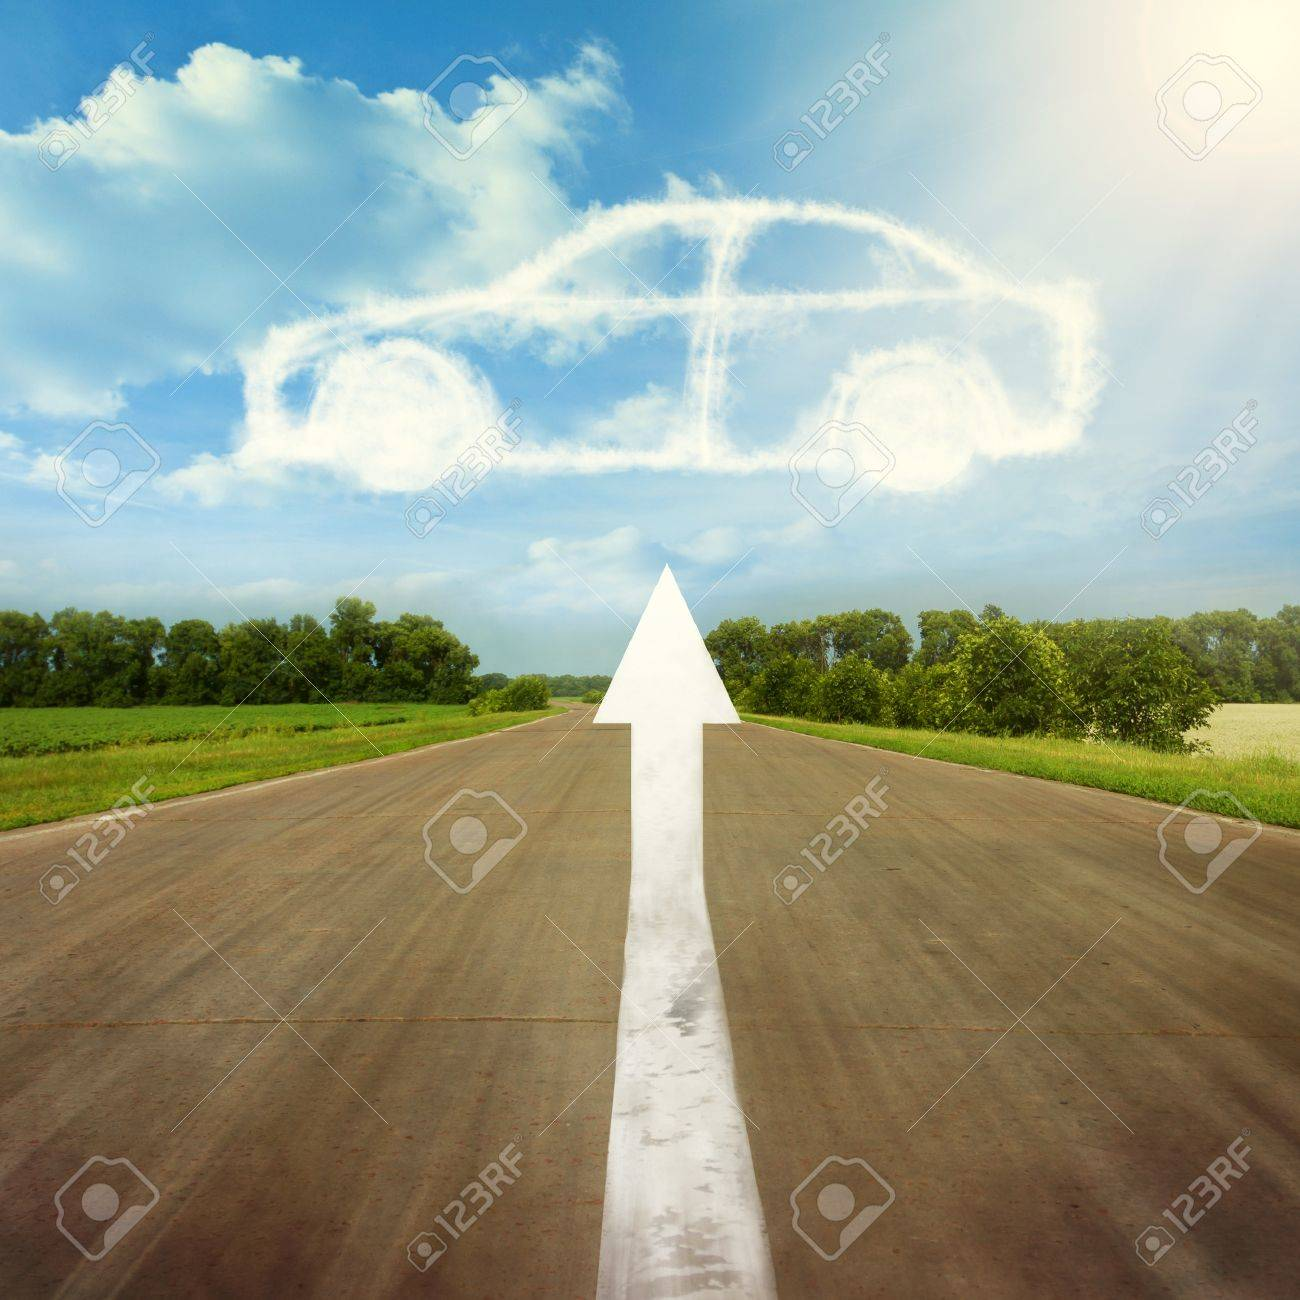 The arrow points to the desired vehicle Stock Photo - 14395162